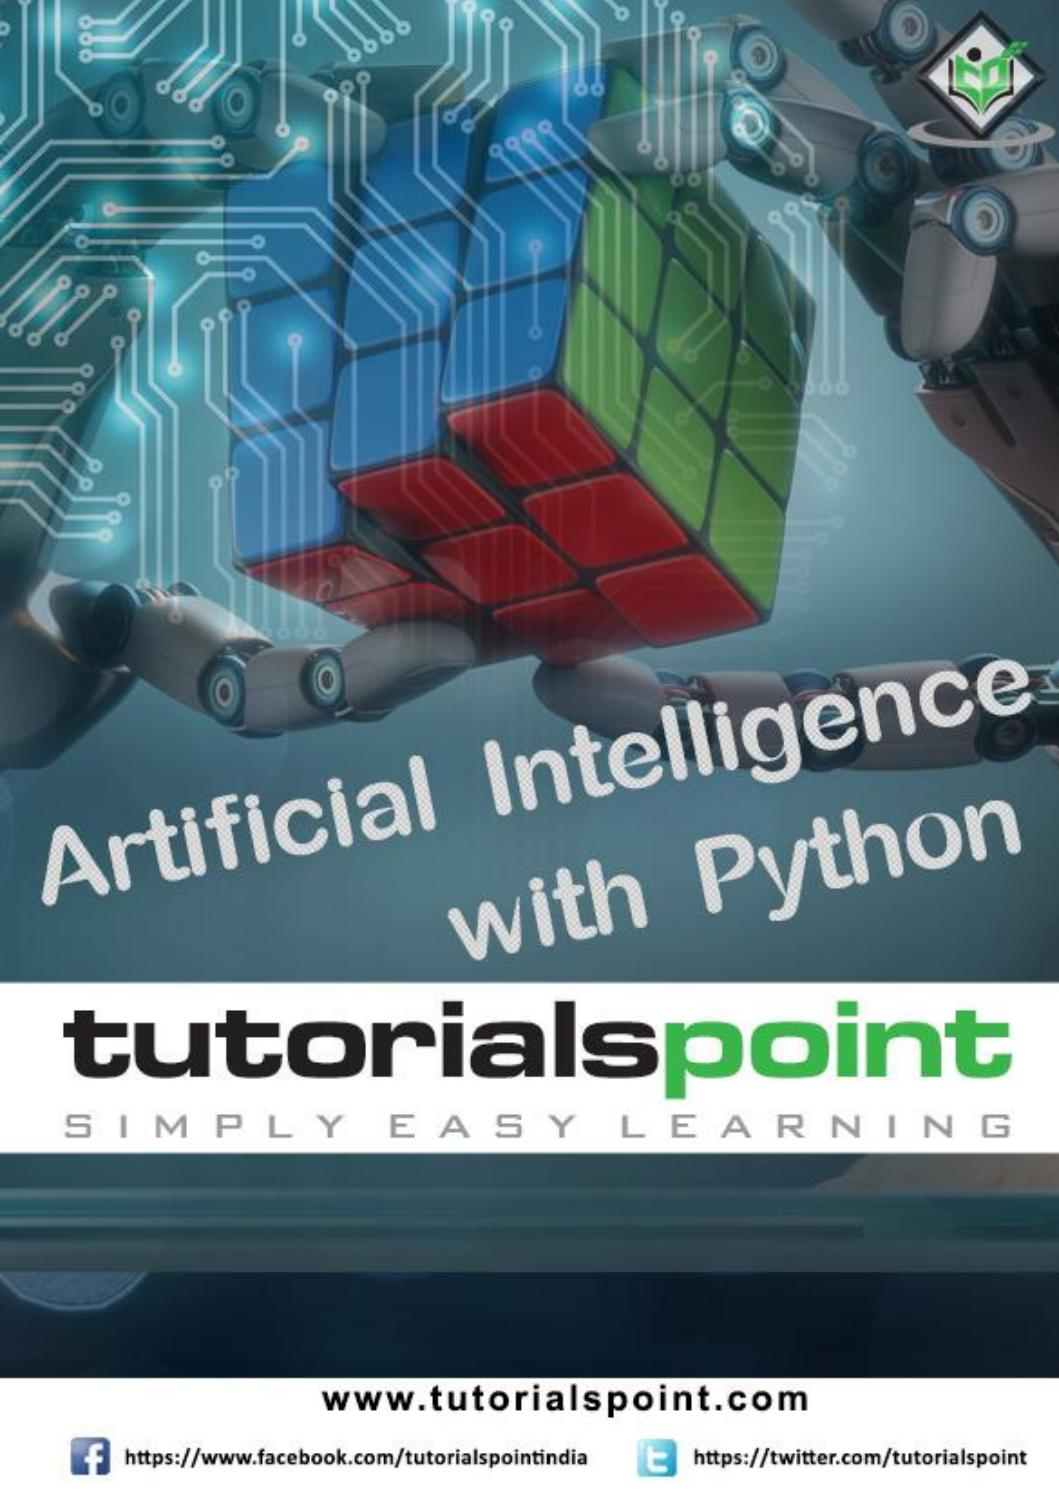 Artificial Intelligence with Python Tutorial by swathi sree